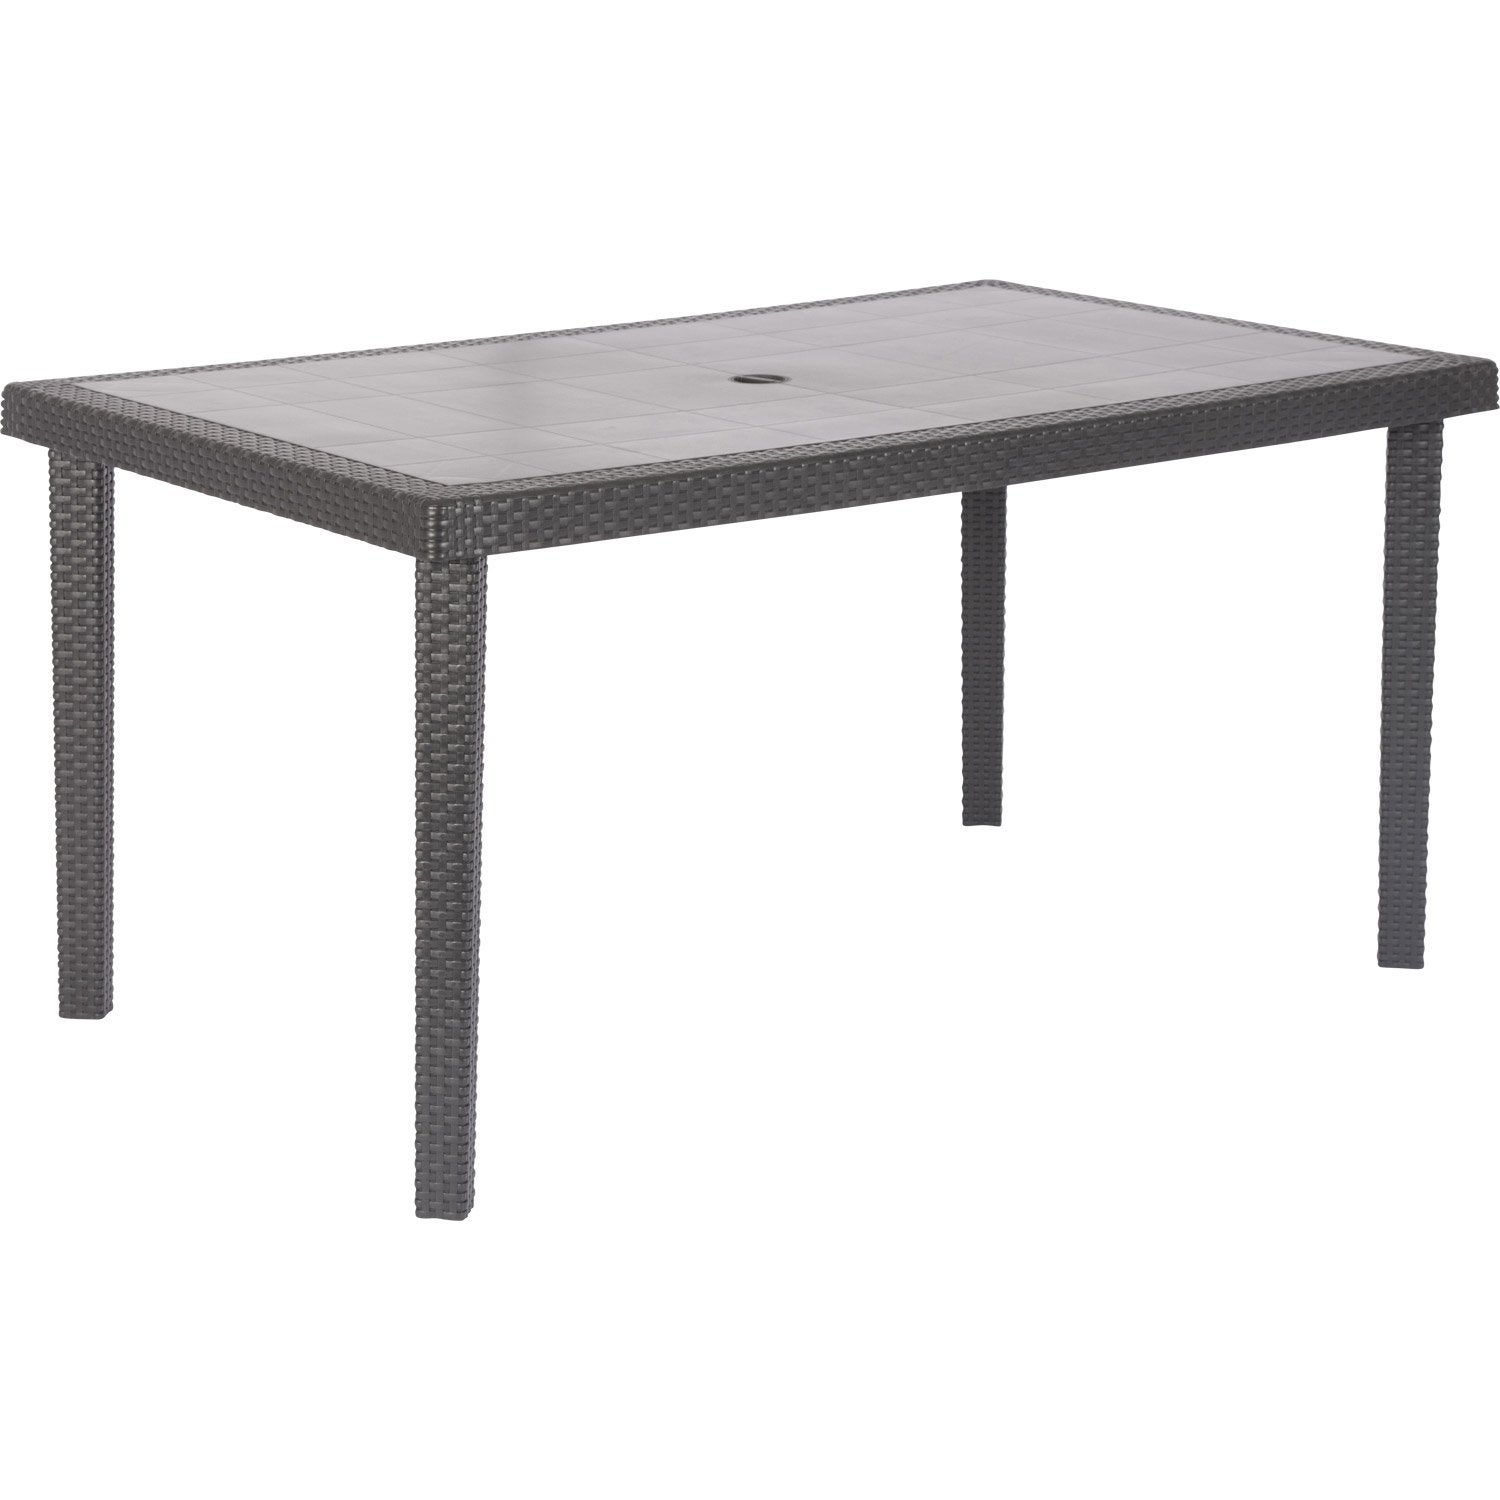 Table de jardin boh me rectangulaire anthracite 6 personnes leroy merlin - Table de jardin chez casa ...